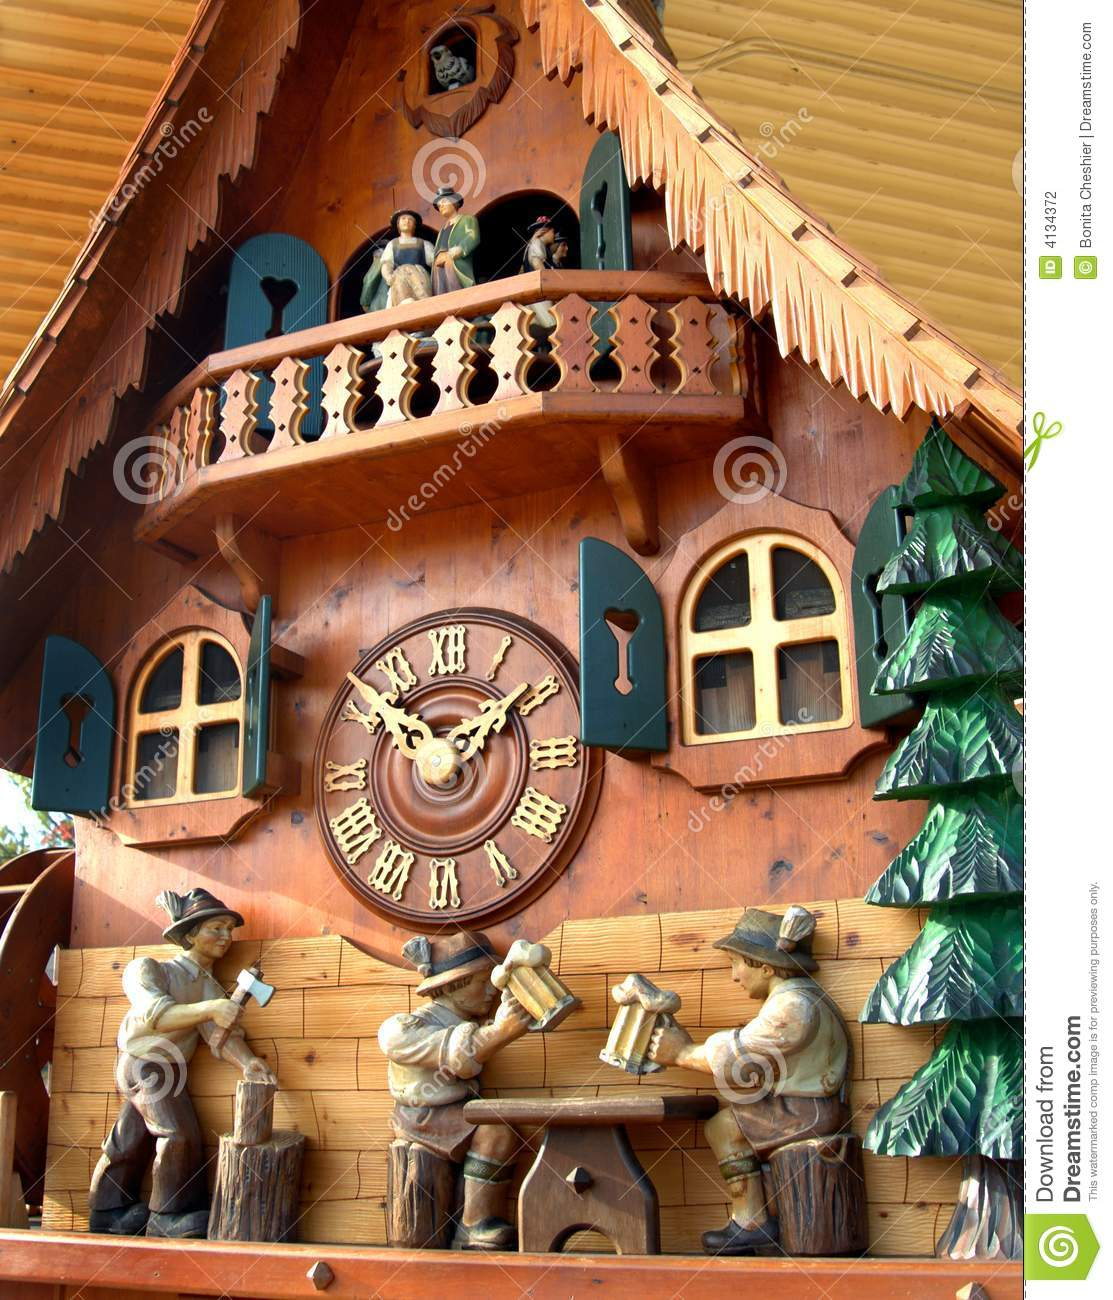 Cuckoo Clock from Black Forest